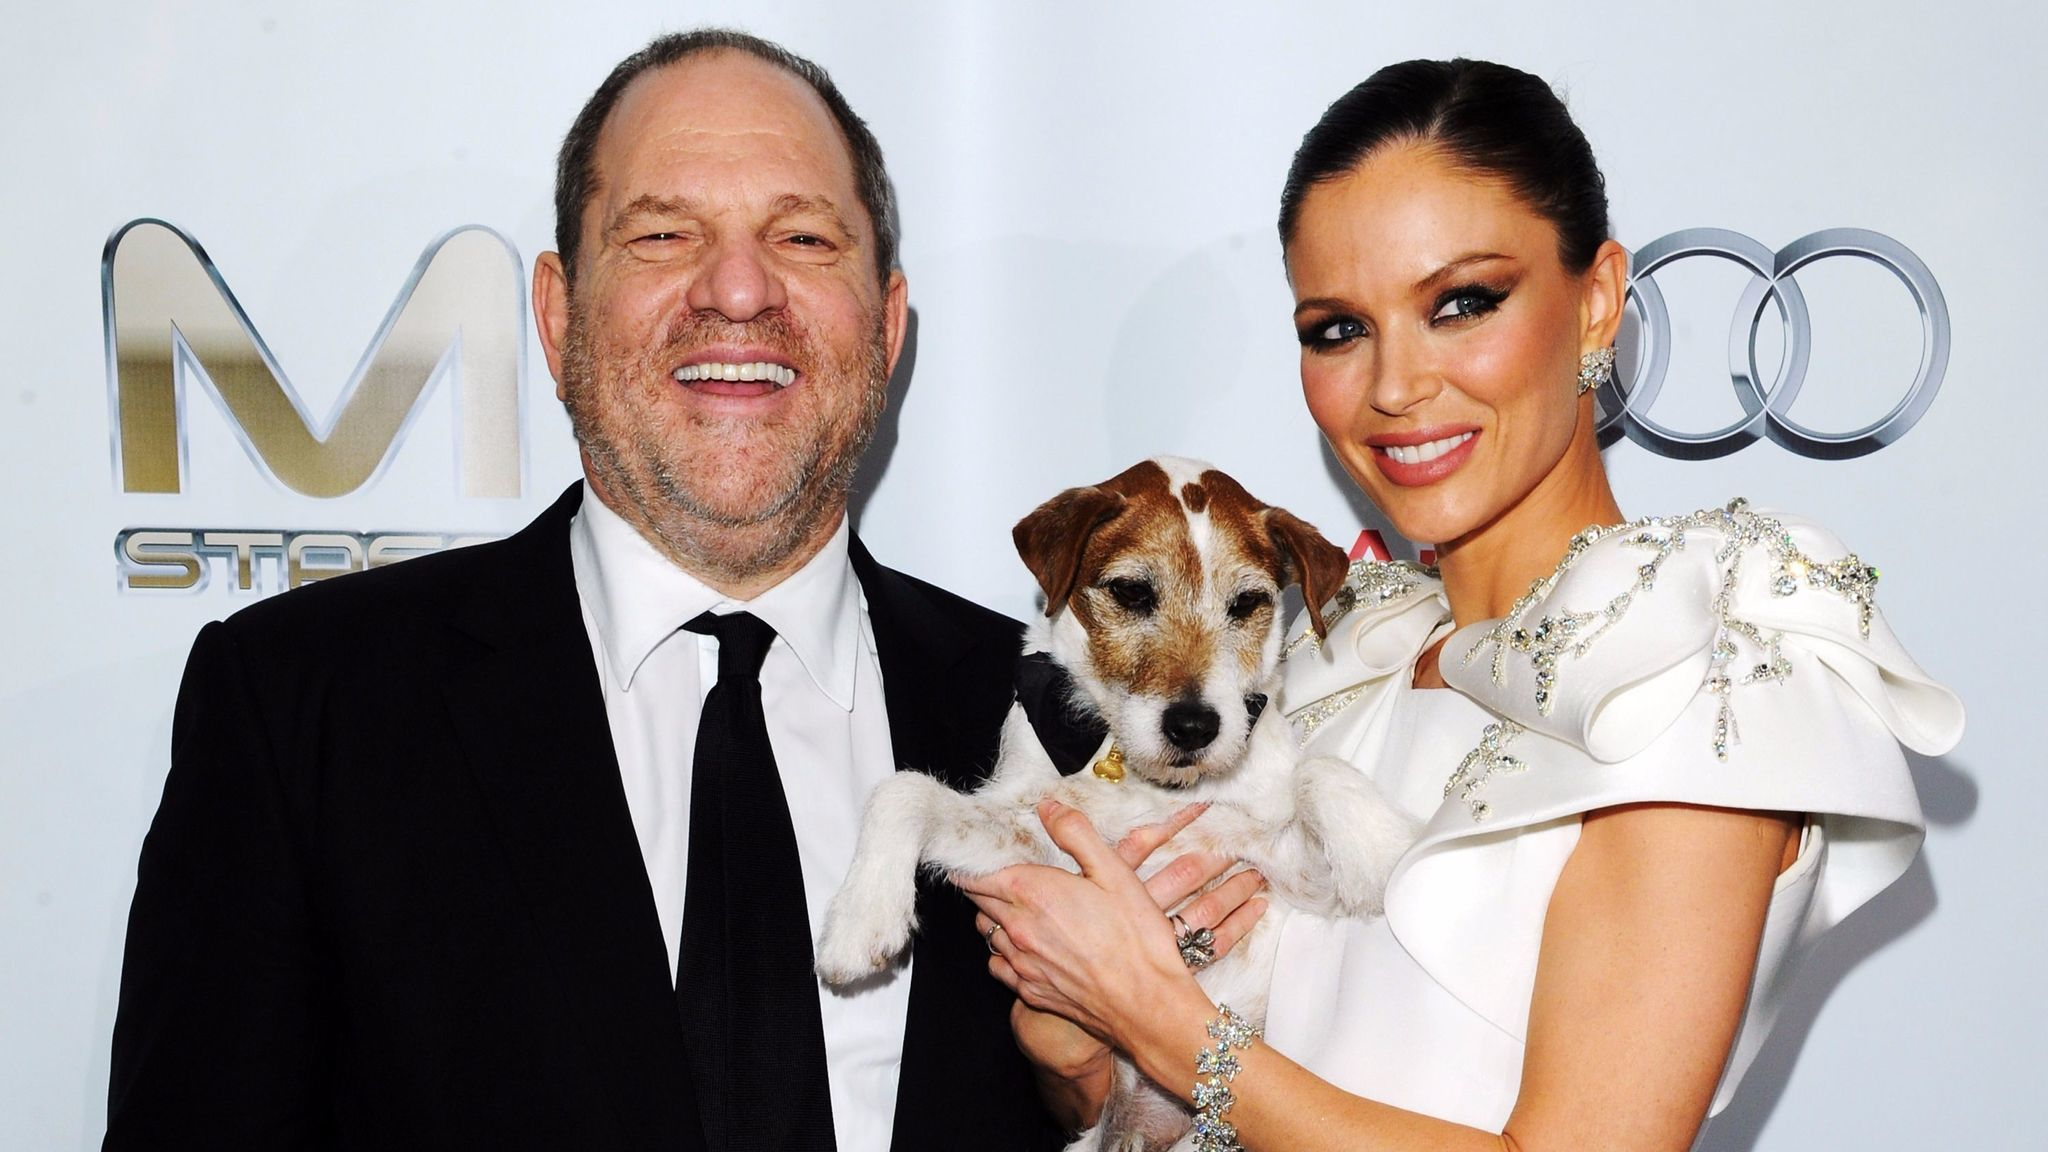 Harvey Weinstein, Uggie the dog and Georgina Chapman attend Weinstein Co.'s Oscar after-party at SkyBar at the Mondrian Los Angeles on Feb. 26, 2012 in West Hollywood.